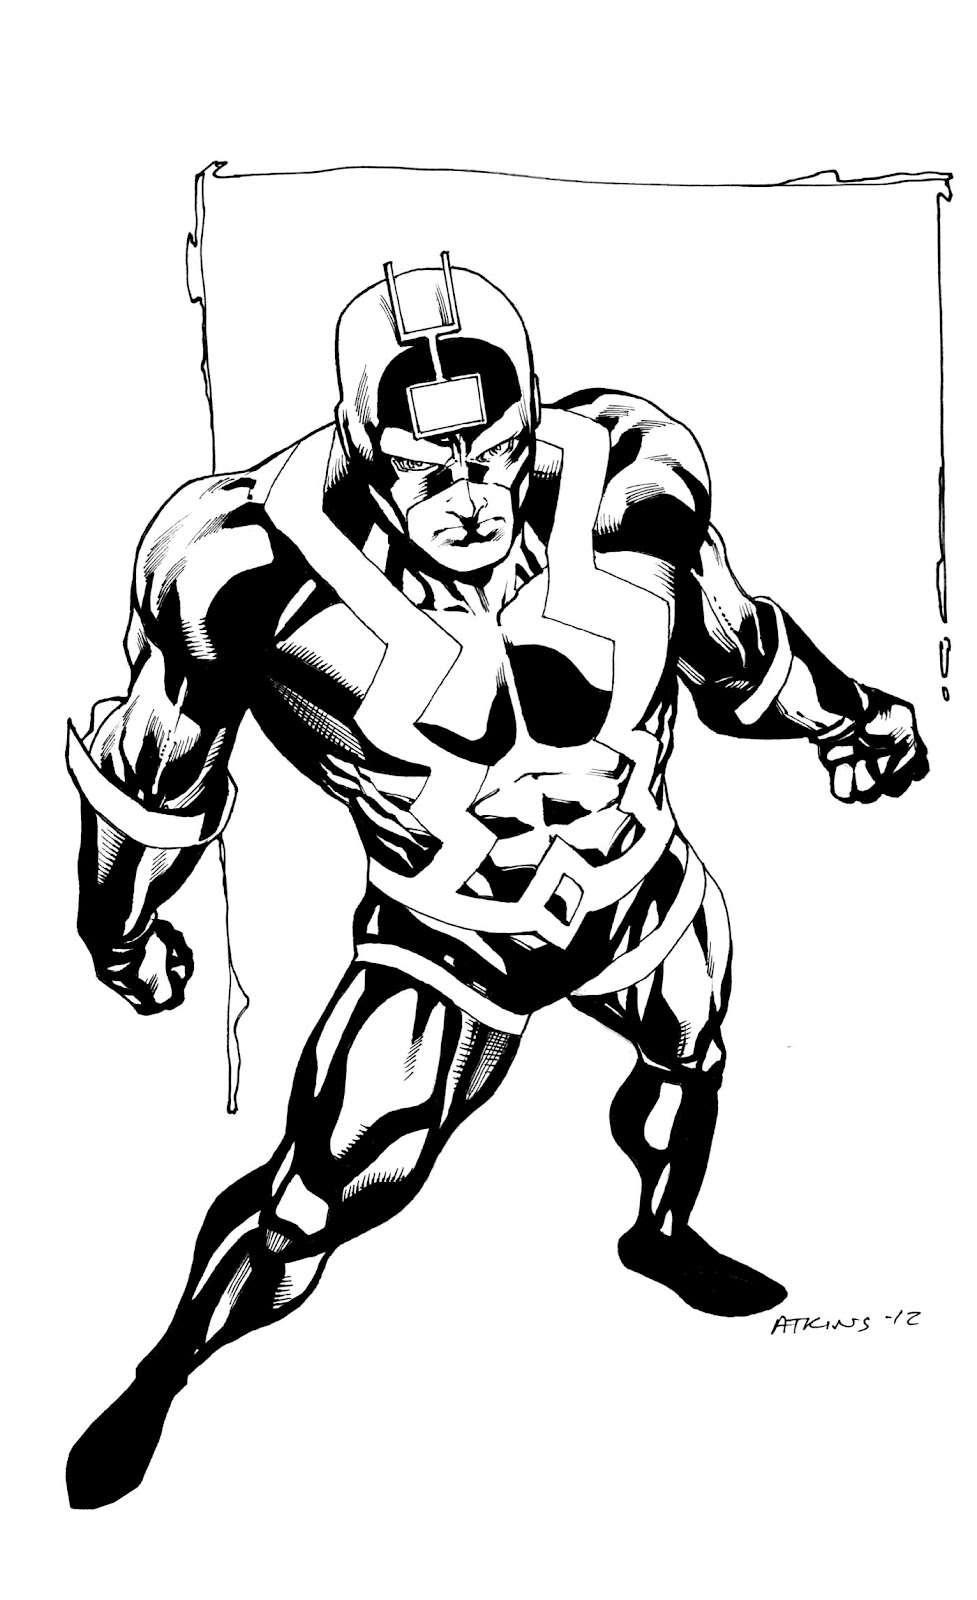 Robert Atkins Art: BlackBolt....